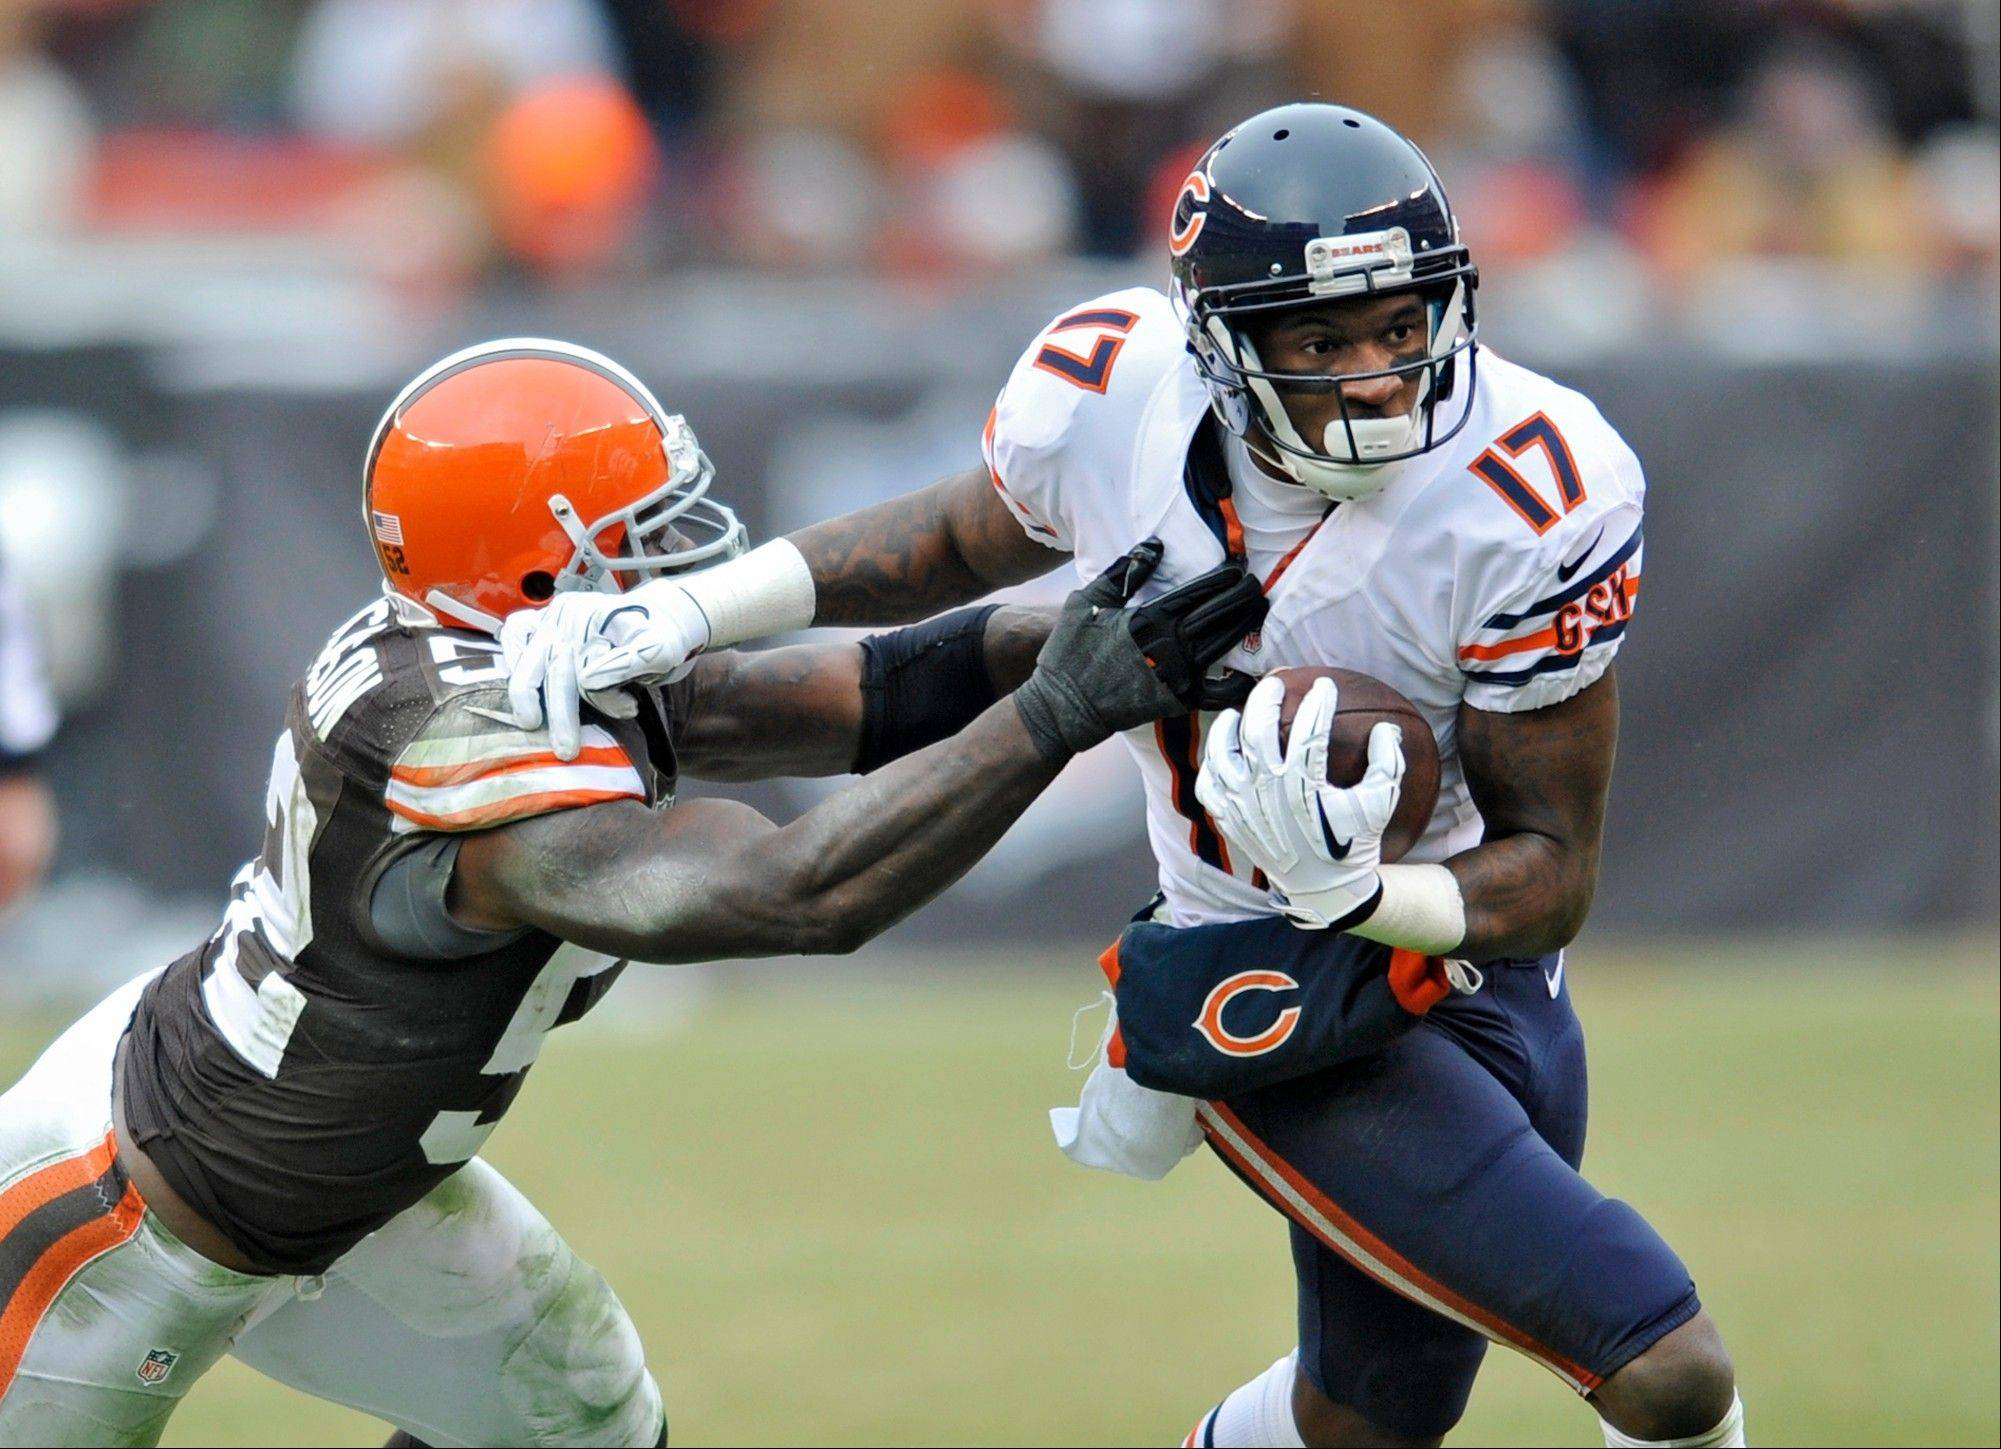 Bears wide receiver Alshon Jeffery (17) fights off Cleveland Browns inside linebacker D�Qwell Jackson after a catch in the second quarter of an NFL football game, Sunday, Dec. 15, 2013, in Cleveland.